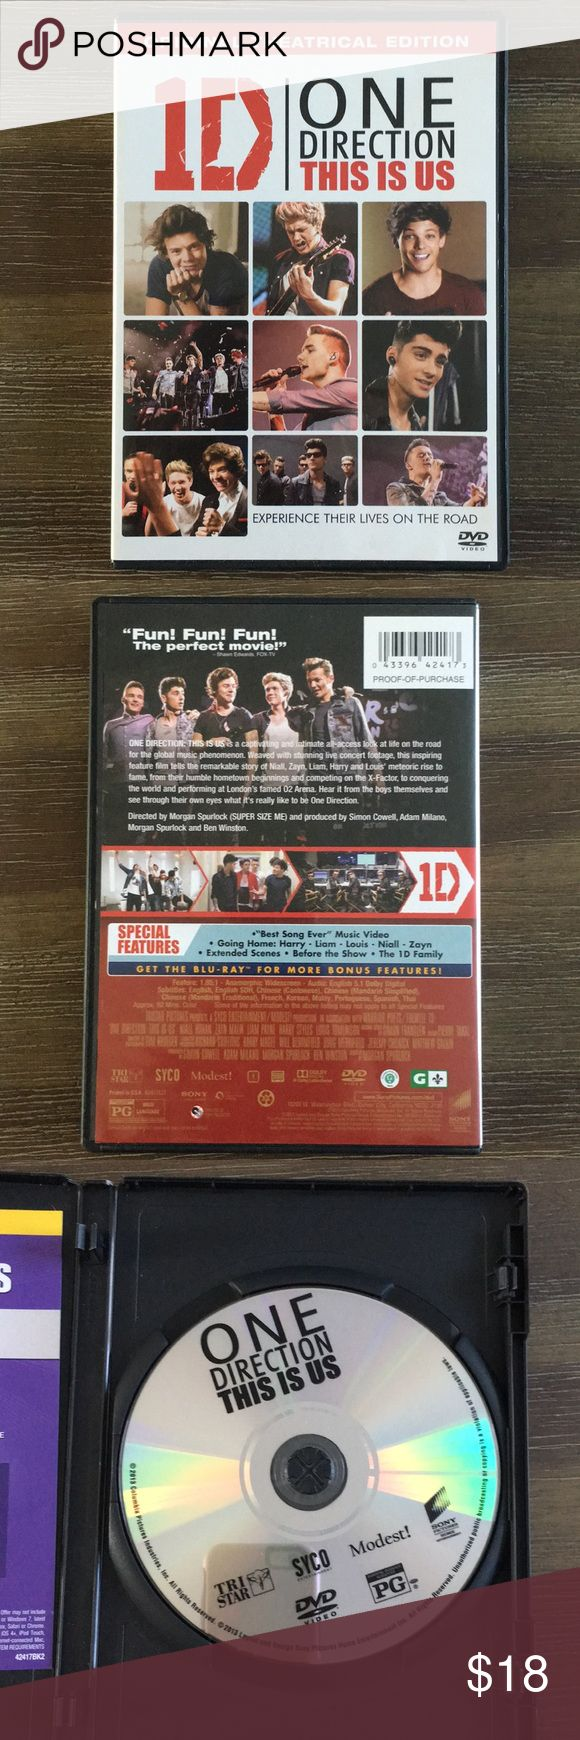 One Direction This is Us Concert DVD 1D This is Us concert dvd. Like new condition. No scratches. One Direction Accessories